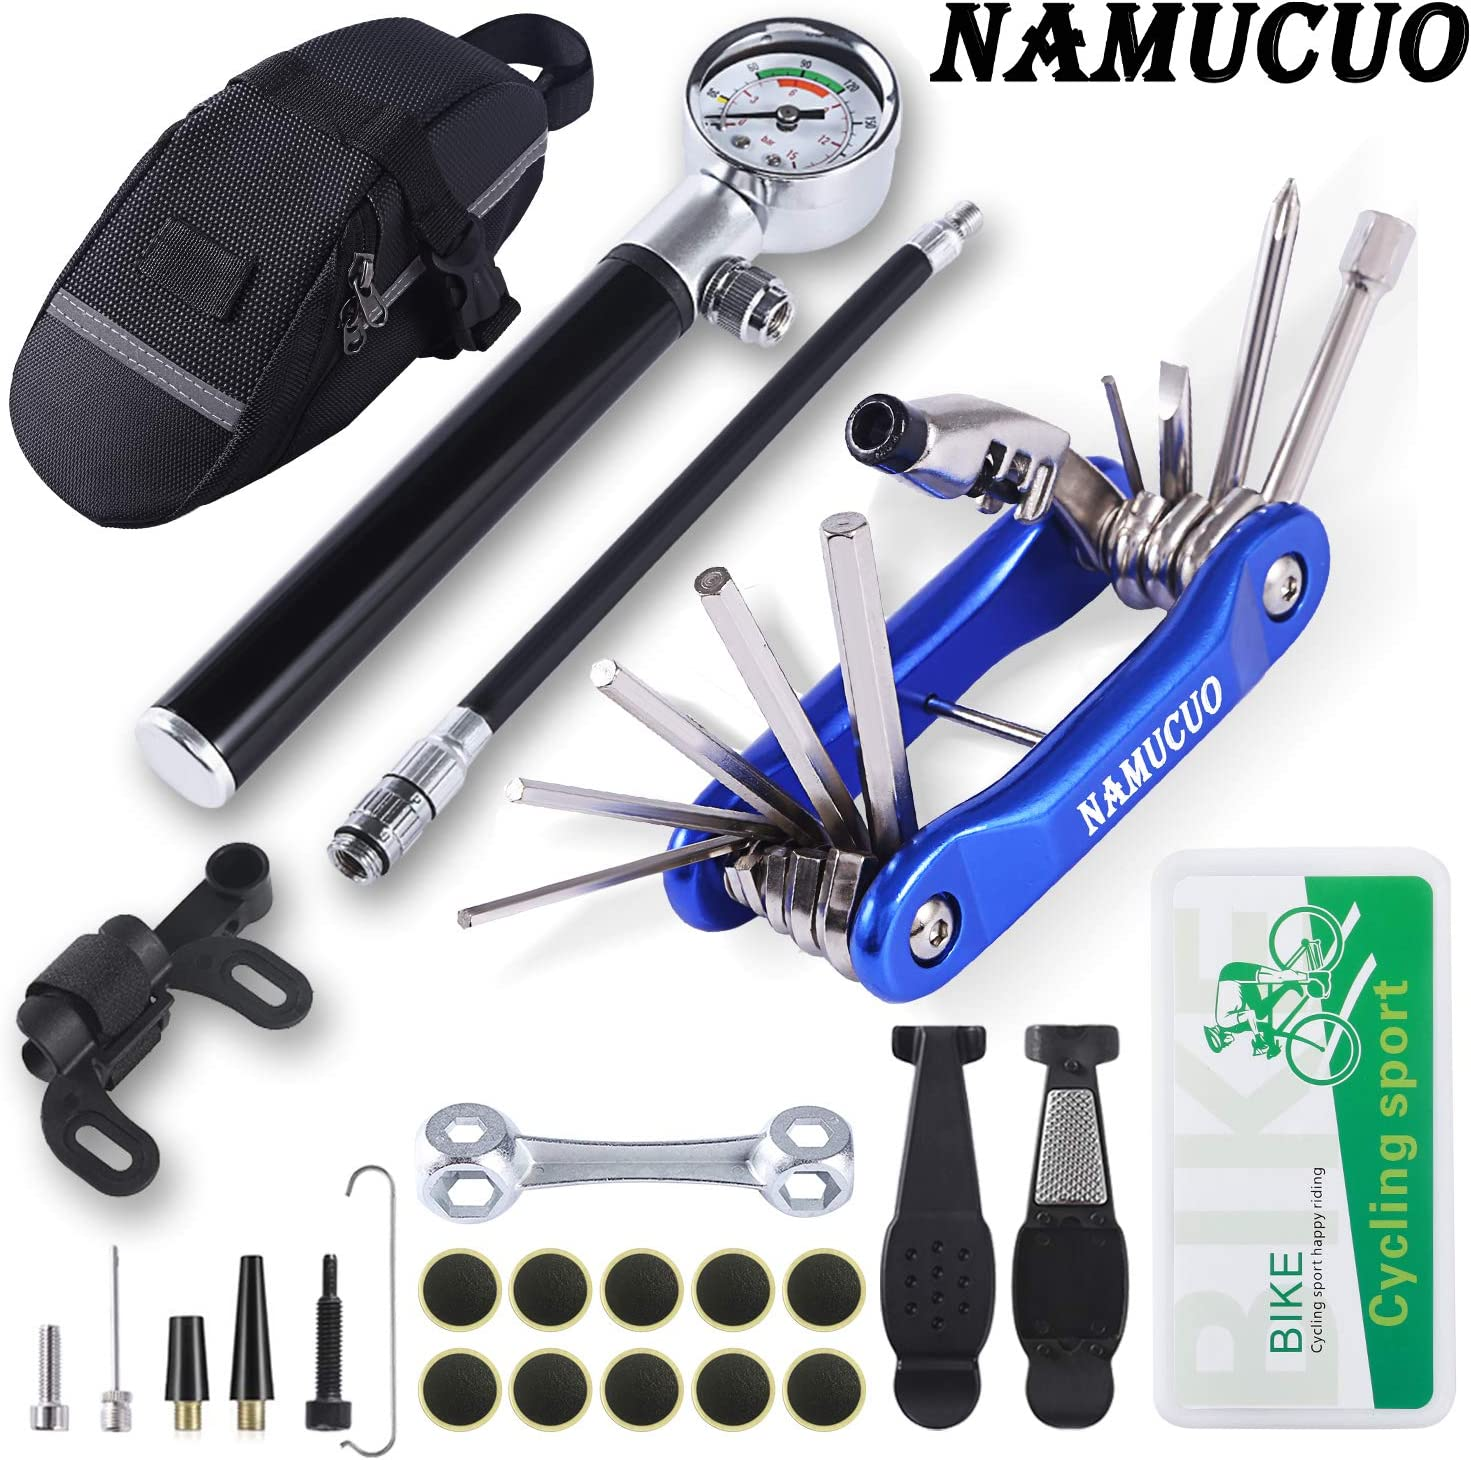 with Chain Breaker Bone Wrench,Portable Bag Glueless Tire Patchs Bicycle Tyre Repair Tool Kit with 210 Psi Mini Pump,11-in-1 Multi-Tool ,Tyre Levers,Tire Patch